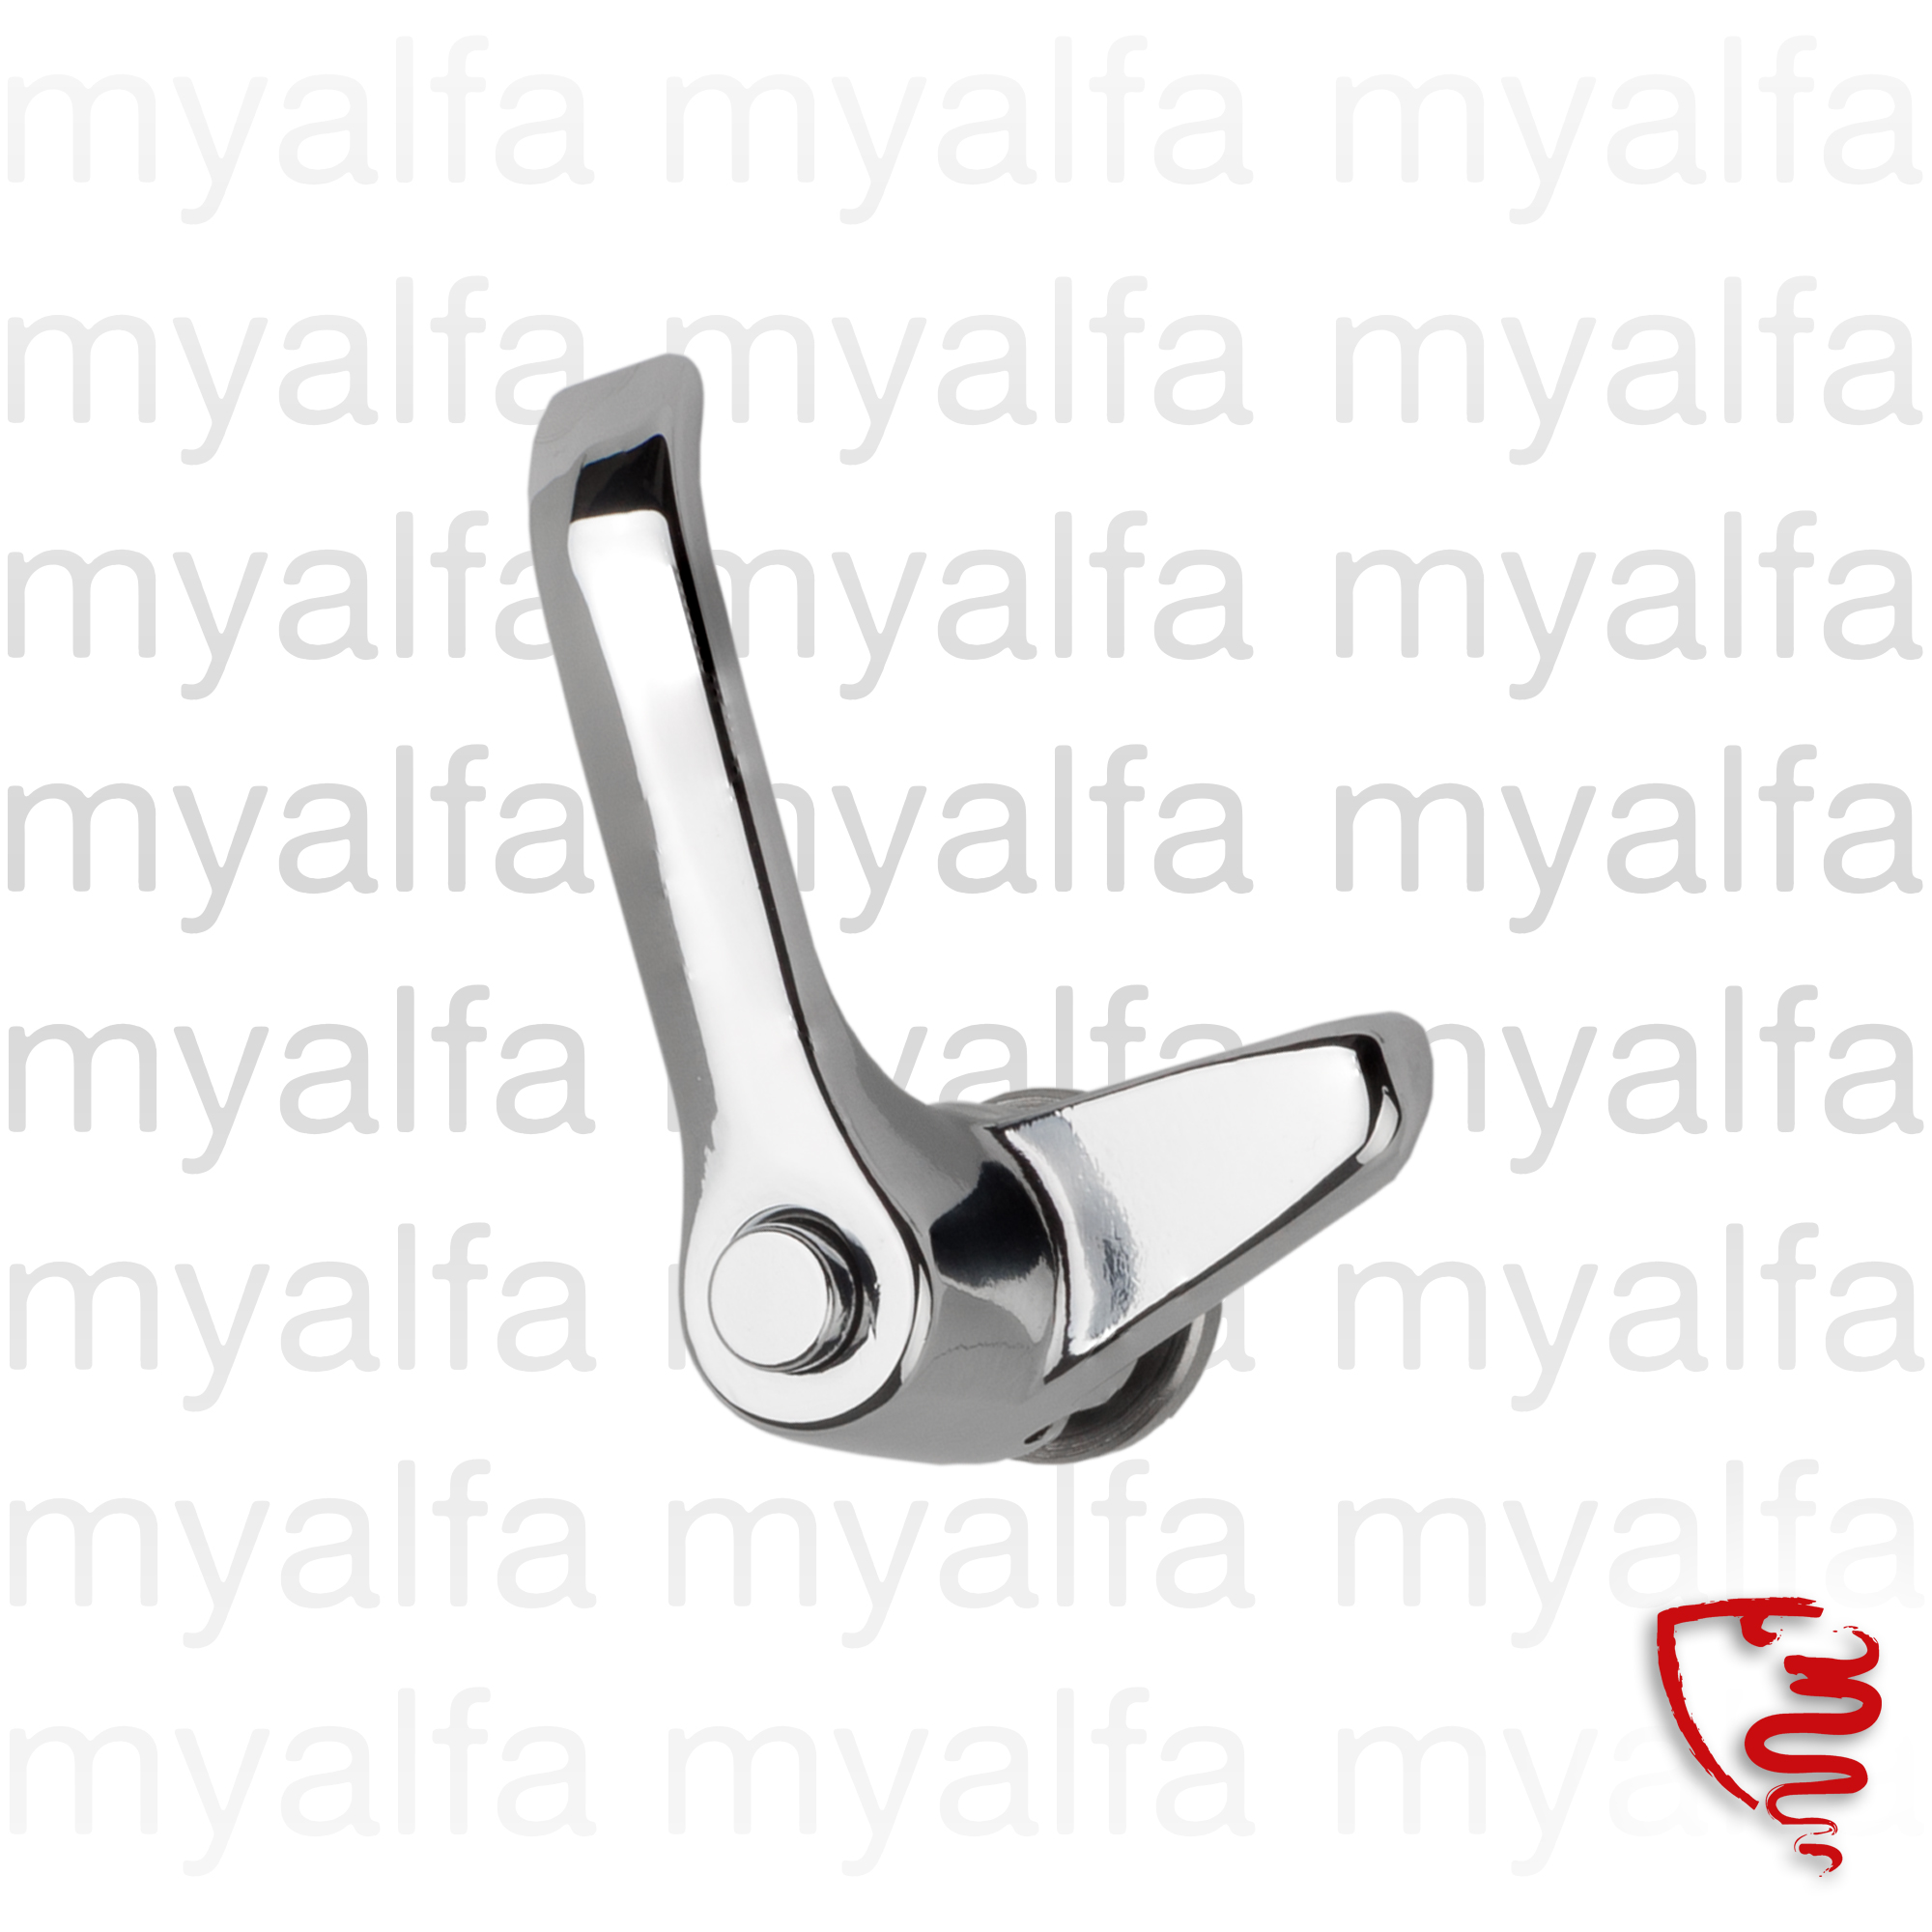 Latch dt.º Spider deflector, Giulia for 105/115, Giulia, Coupe, Spider, Body parts, Chrome Parts, Door